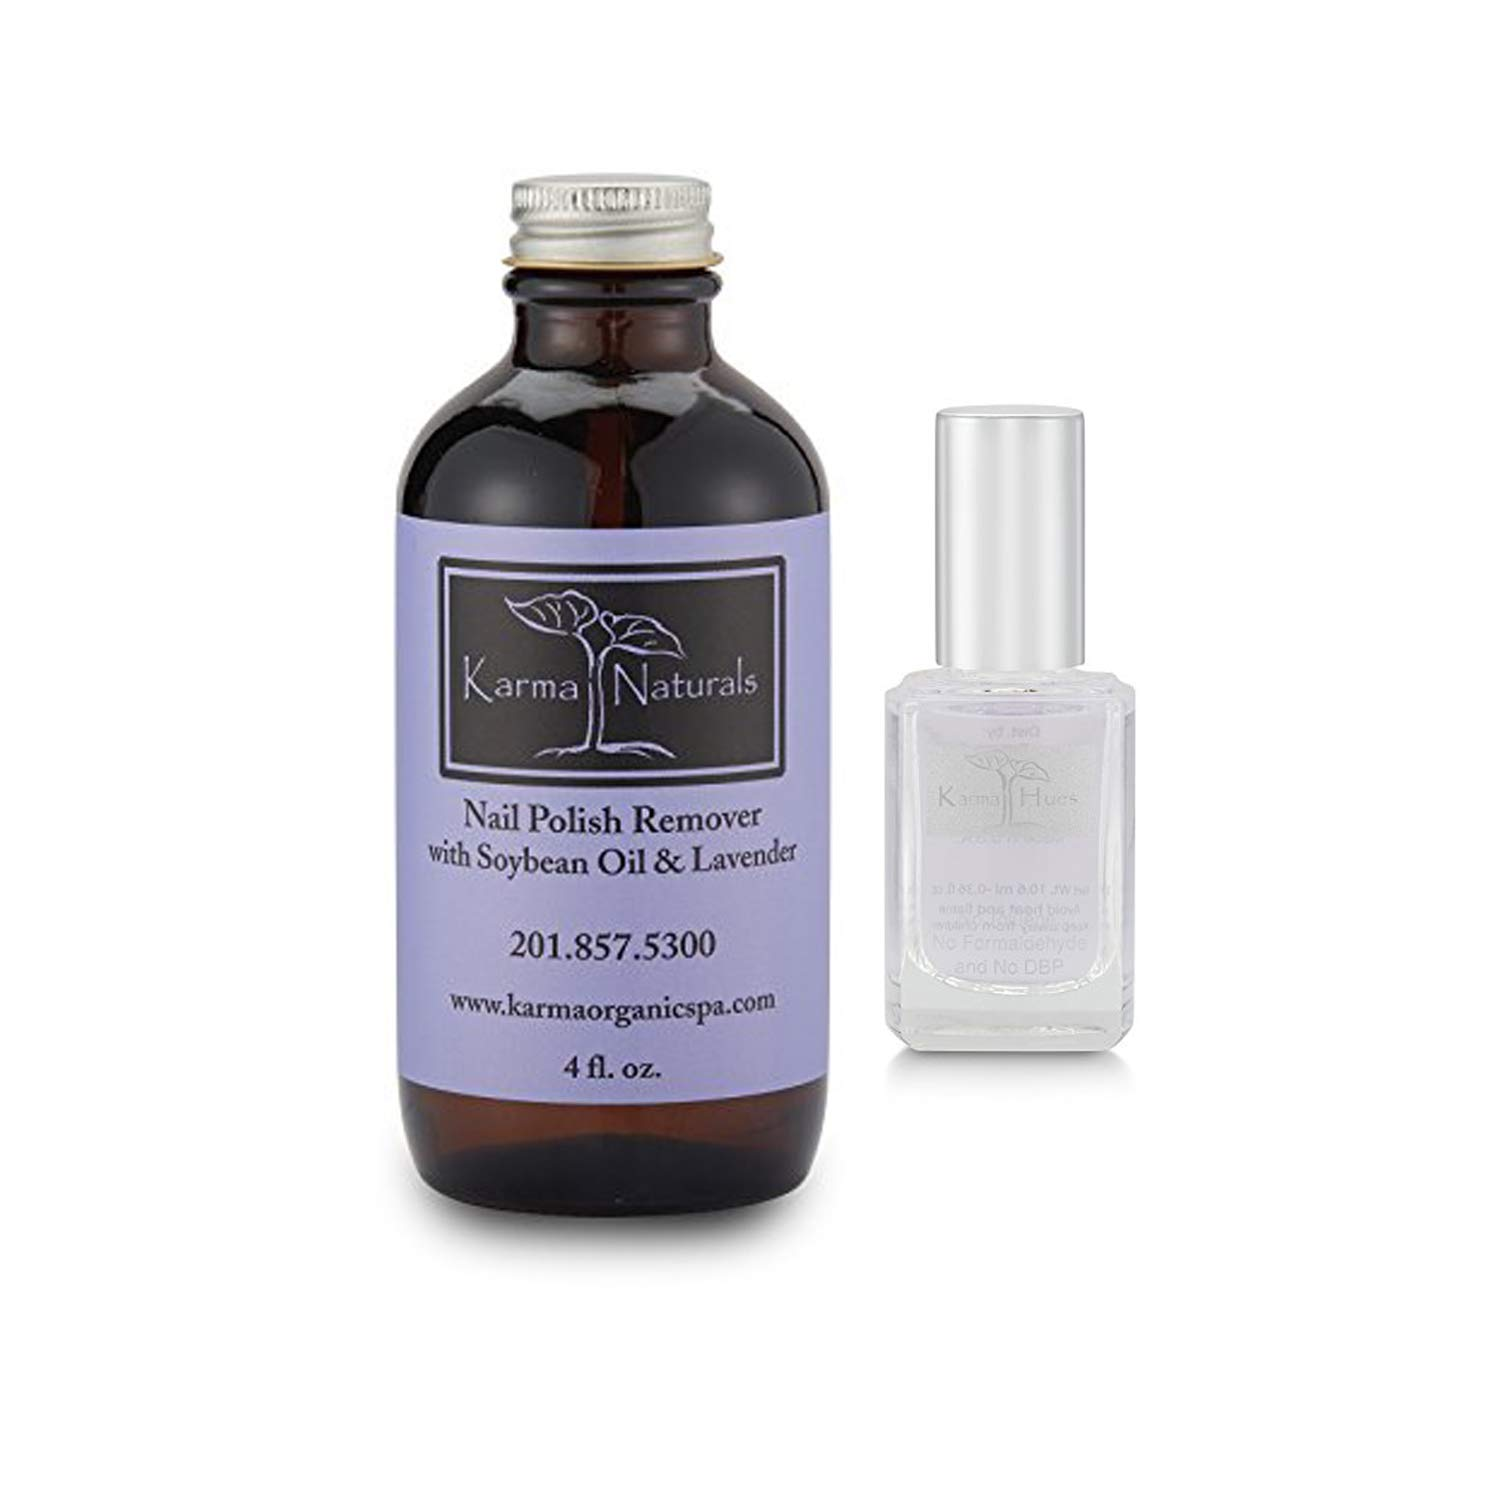 Karma Organic Natural Soybean Lavender Nail Polish Remover with Two in One Base Coat/Top Coat for Women- Non-Toxic Nail Treatment Vegan Cruelty-Free by karma organic